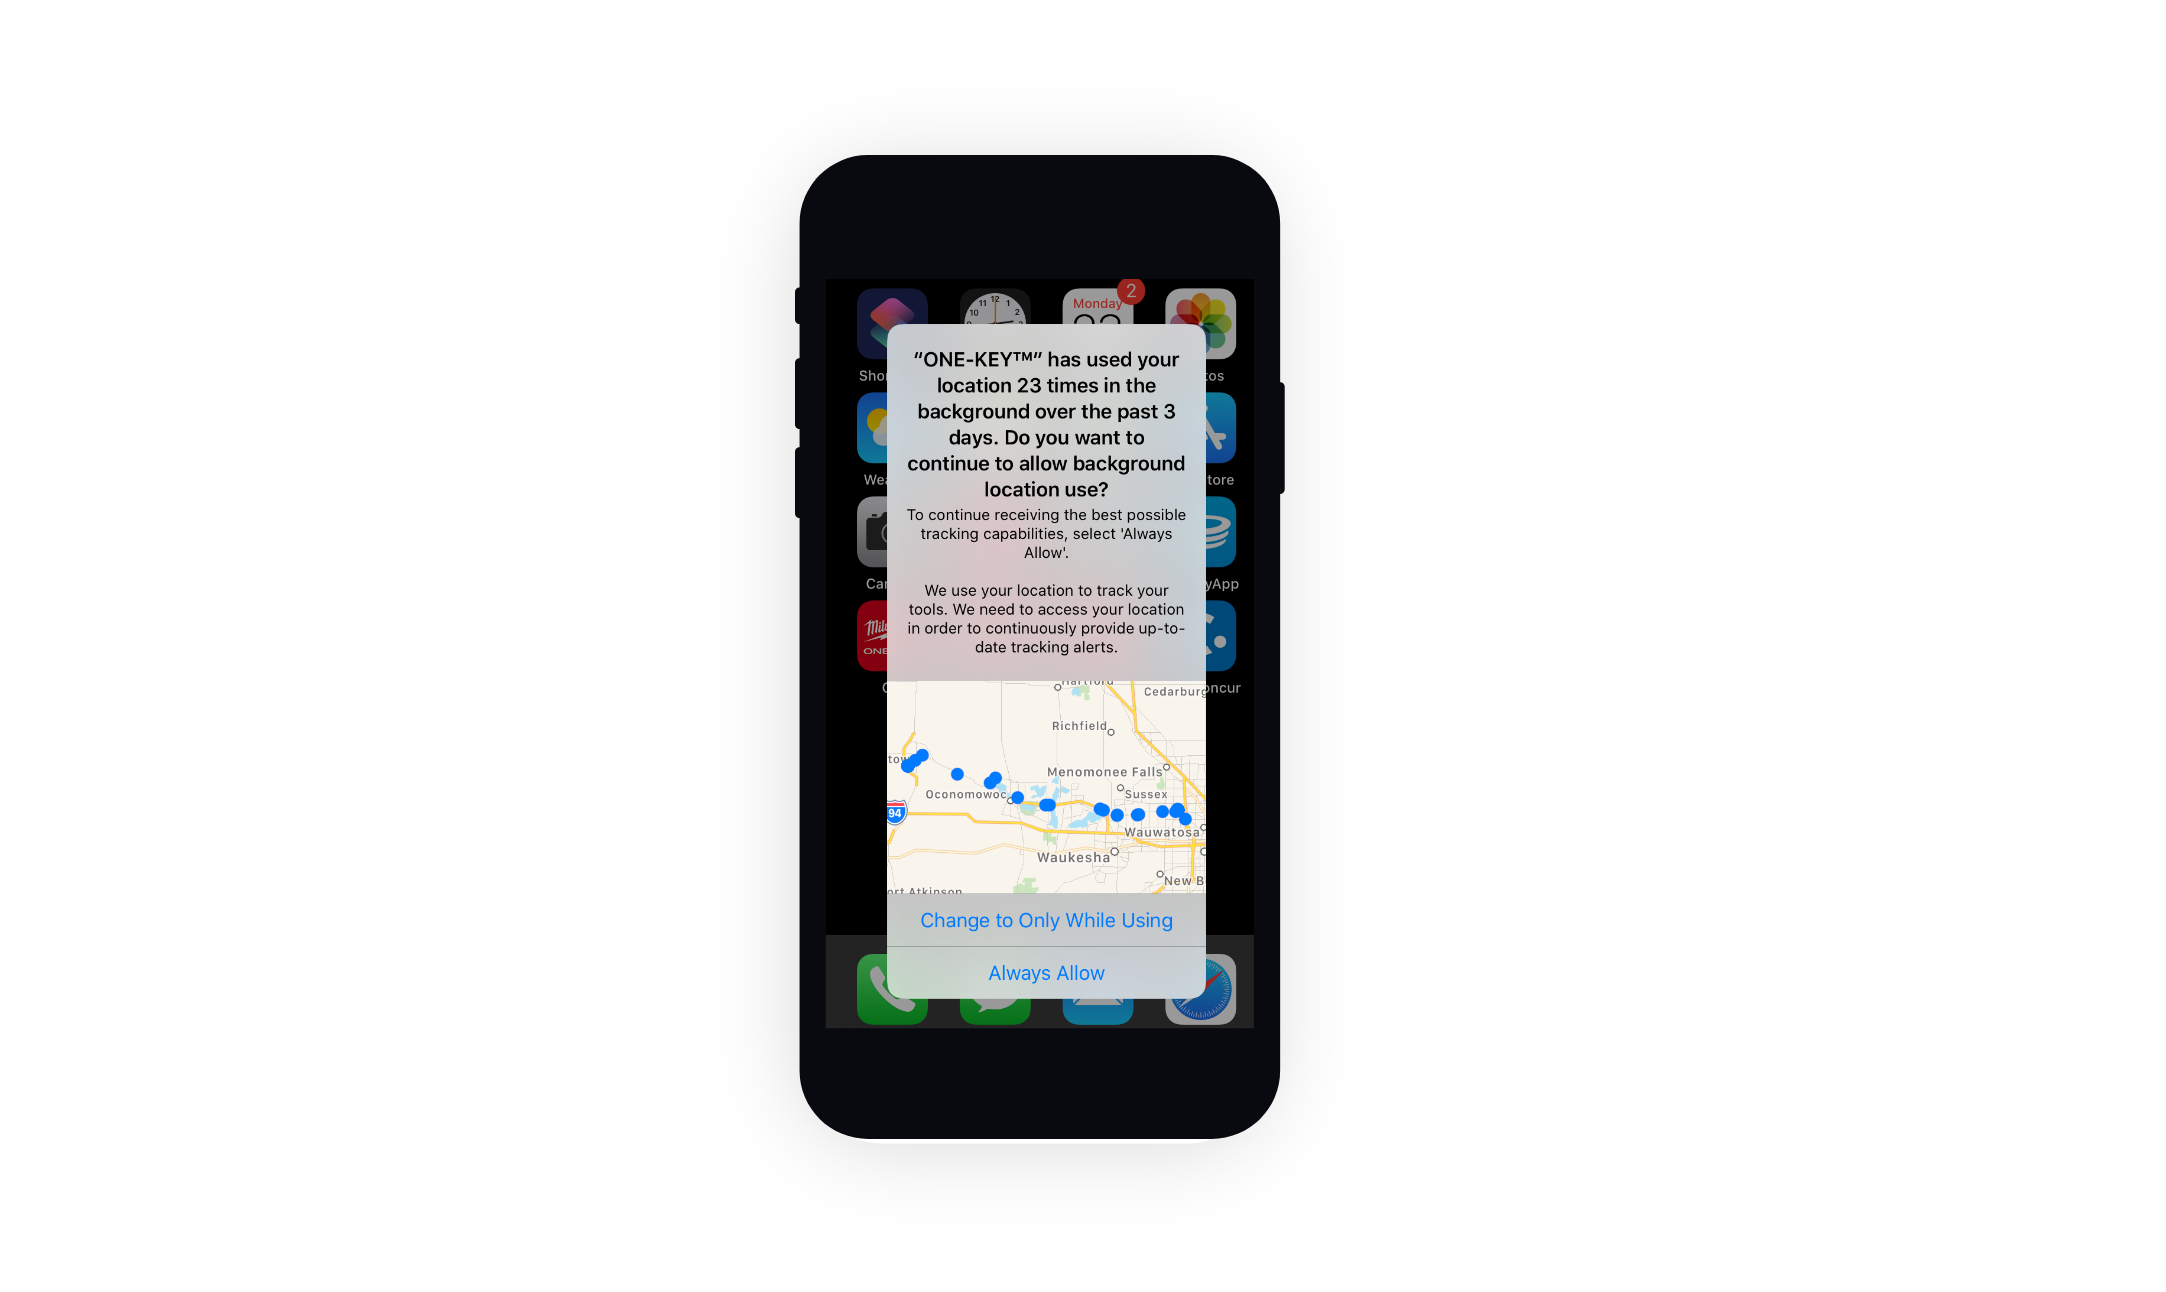 A mobile phone displays a system prompt about background location use